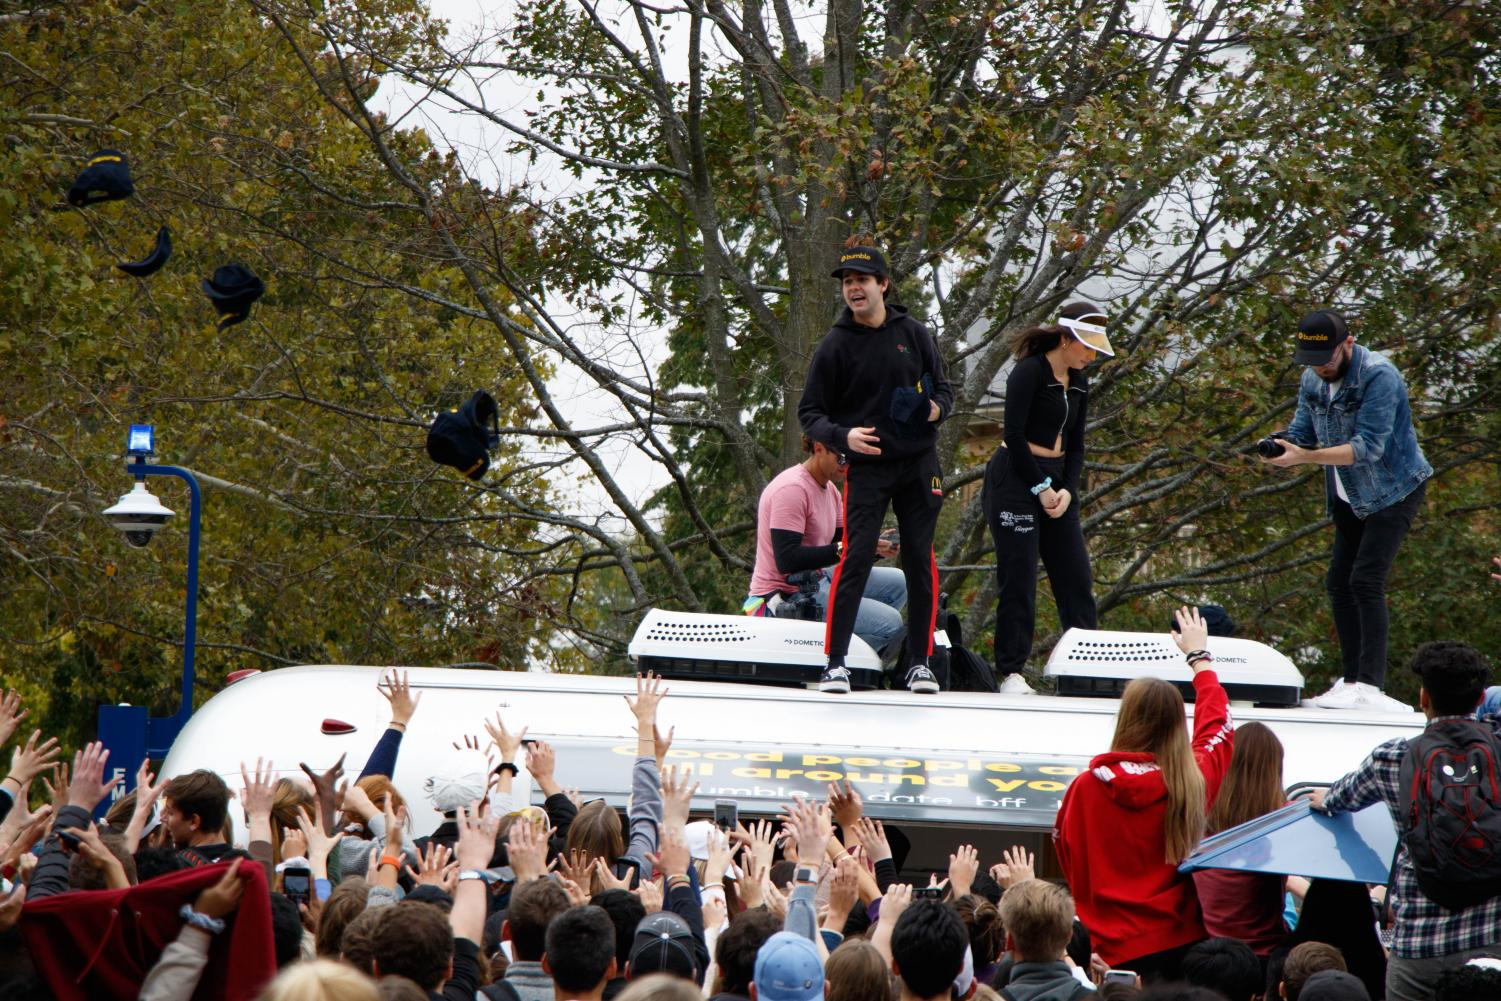 David Dobrik stands on a trailer outside the UGL while he interacts with students on Tuesday afternoon. The YouTuber frequently goes to college campuses to meet students and interact with them, often giving them thousands of dollars or material gifts.